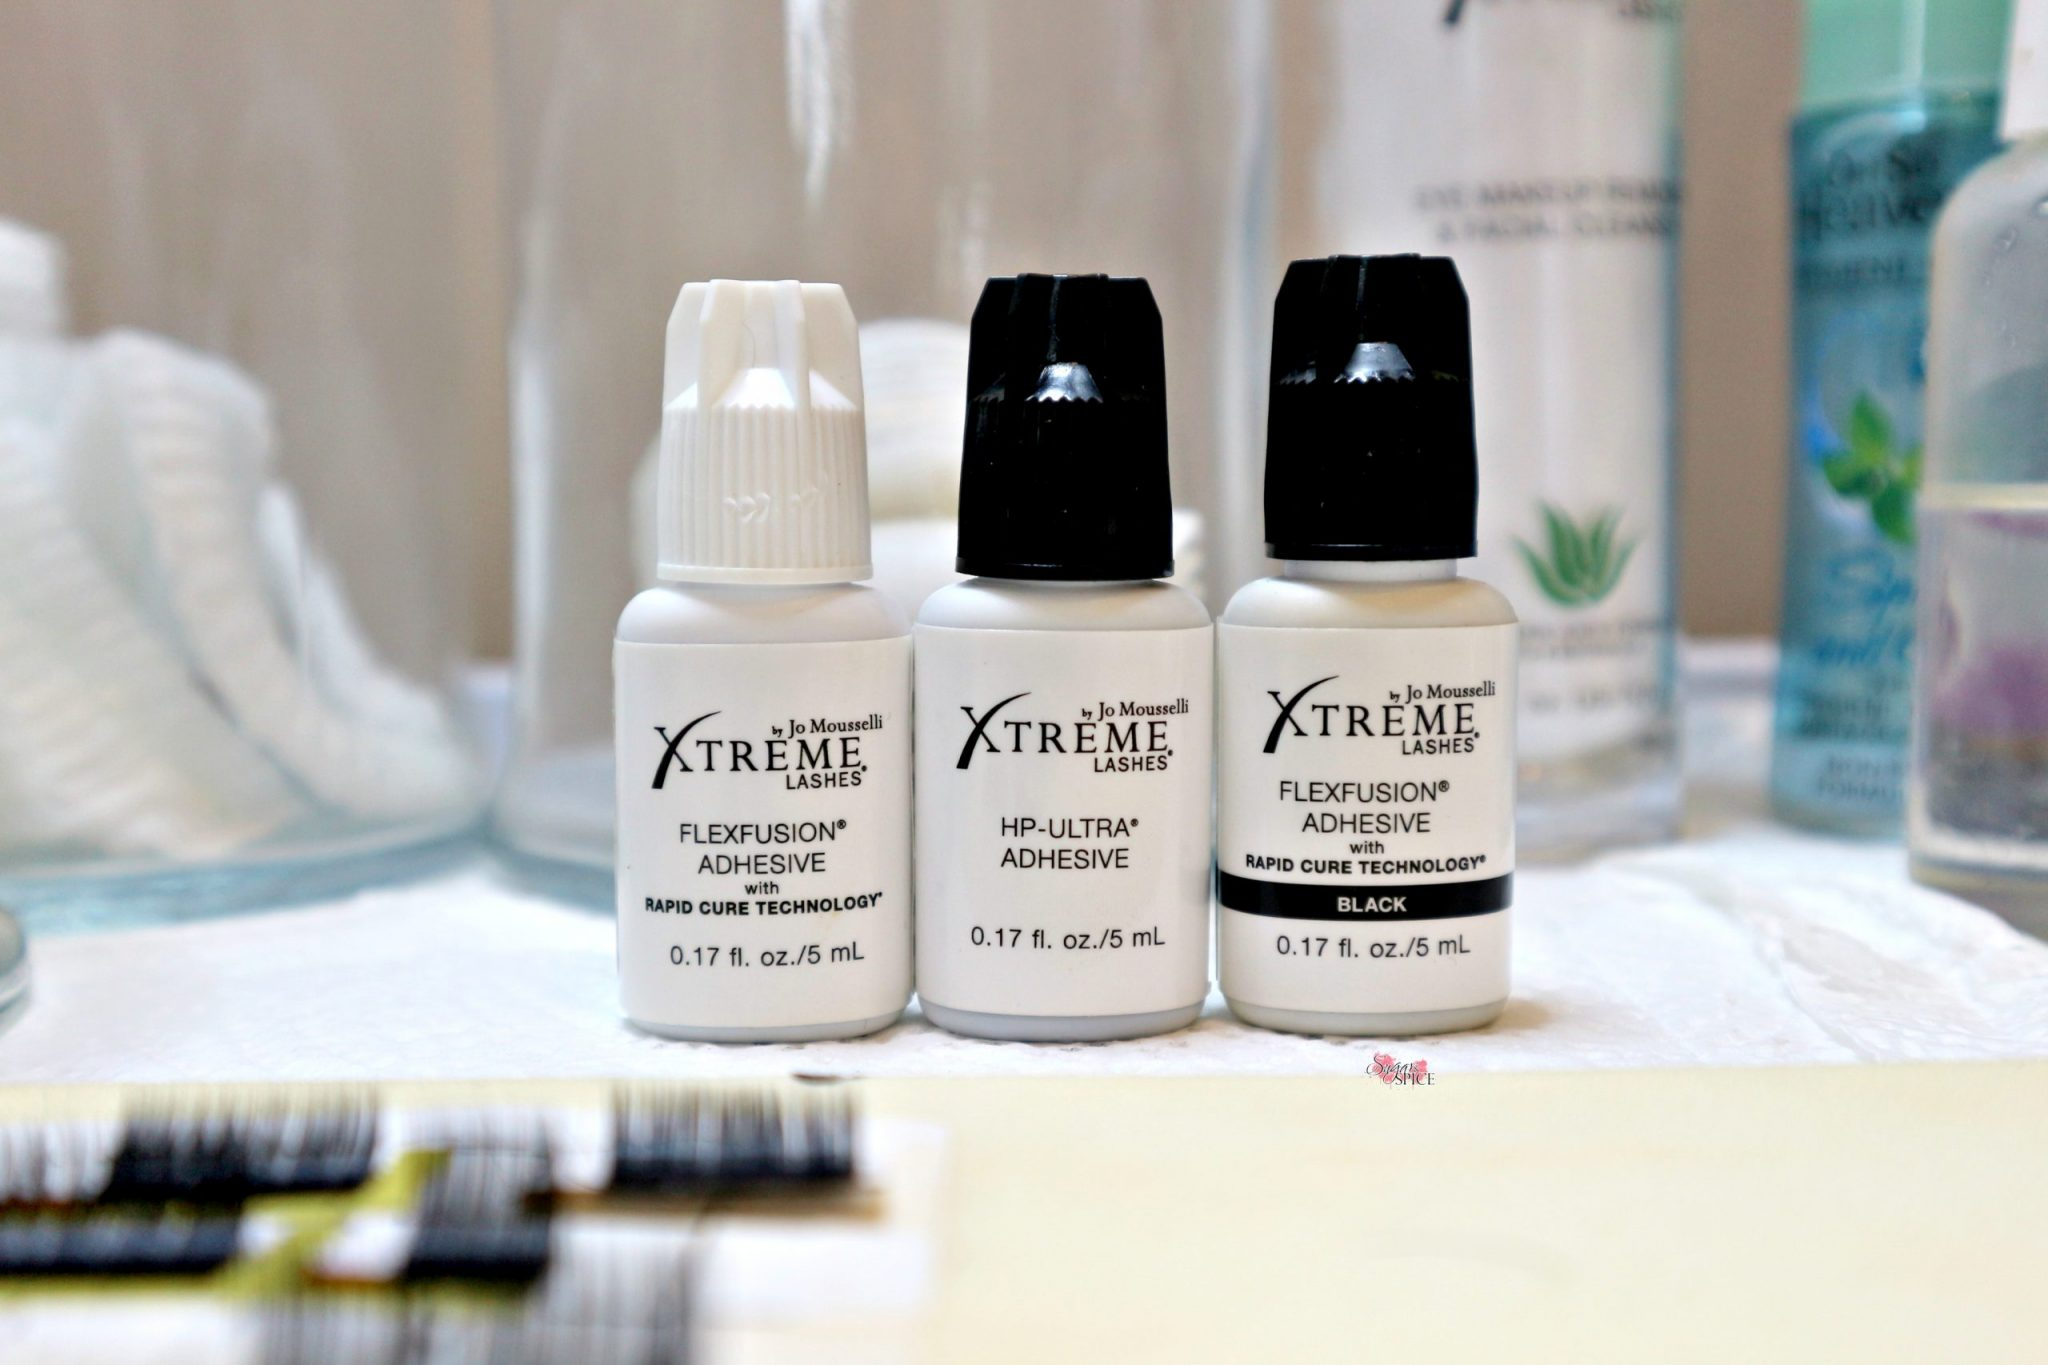 Xtreme Lashes Experience, Sugar & Spice